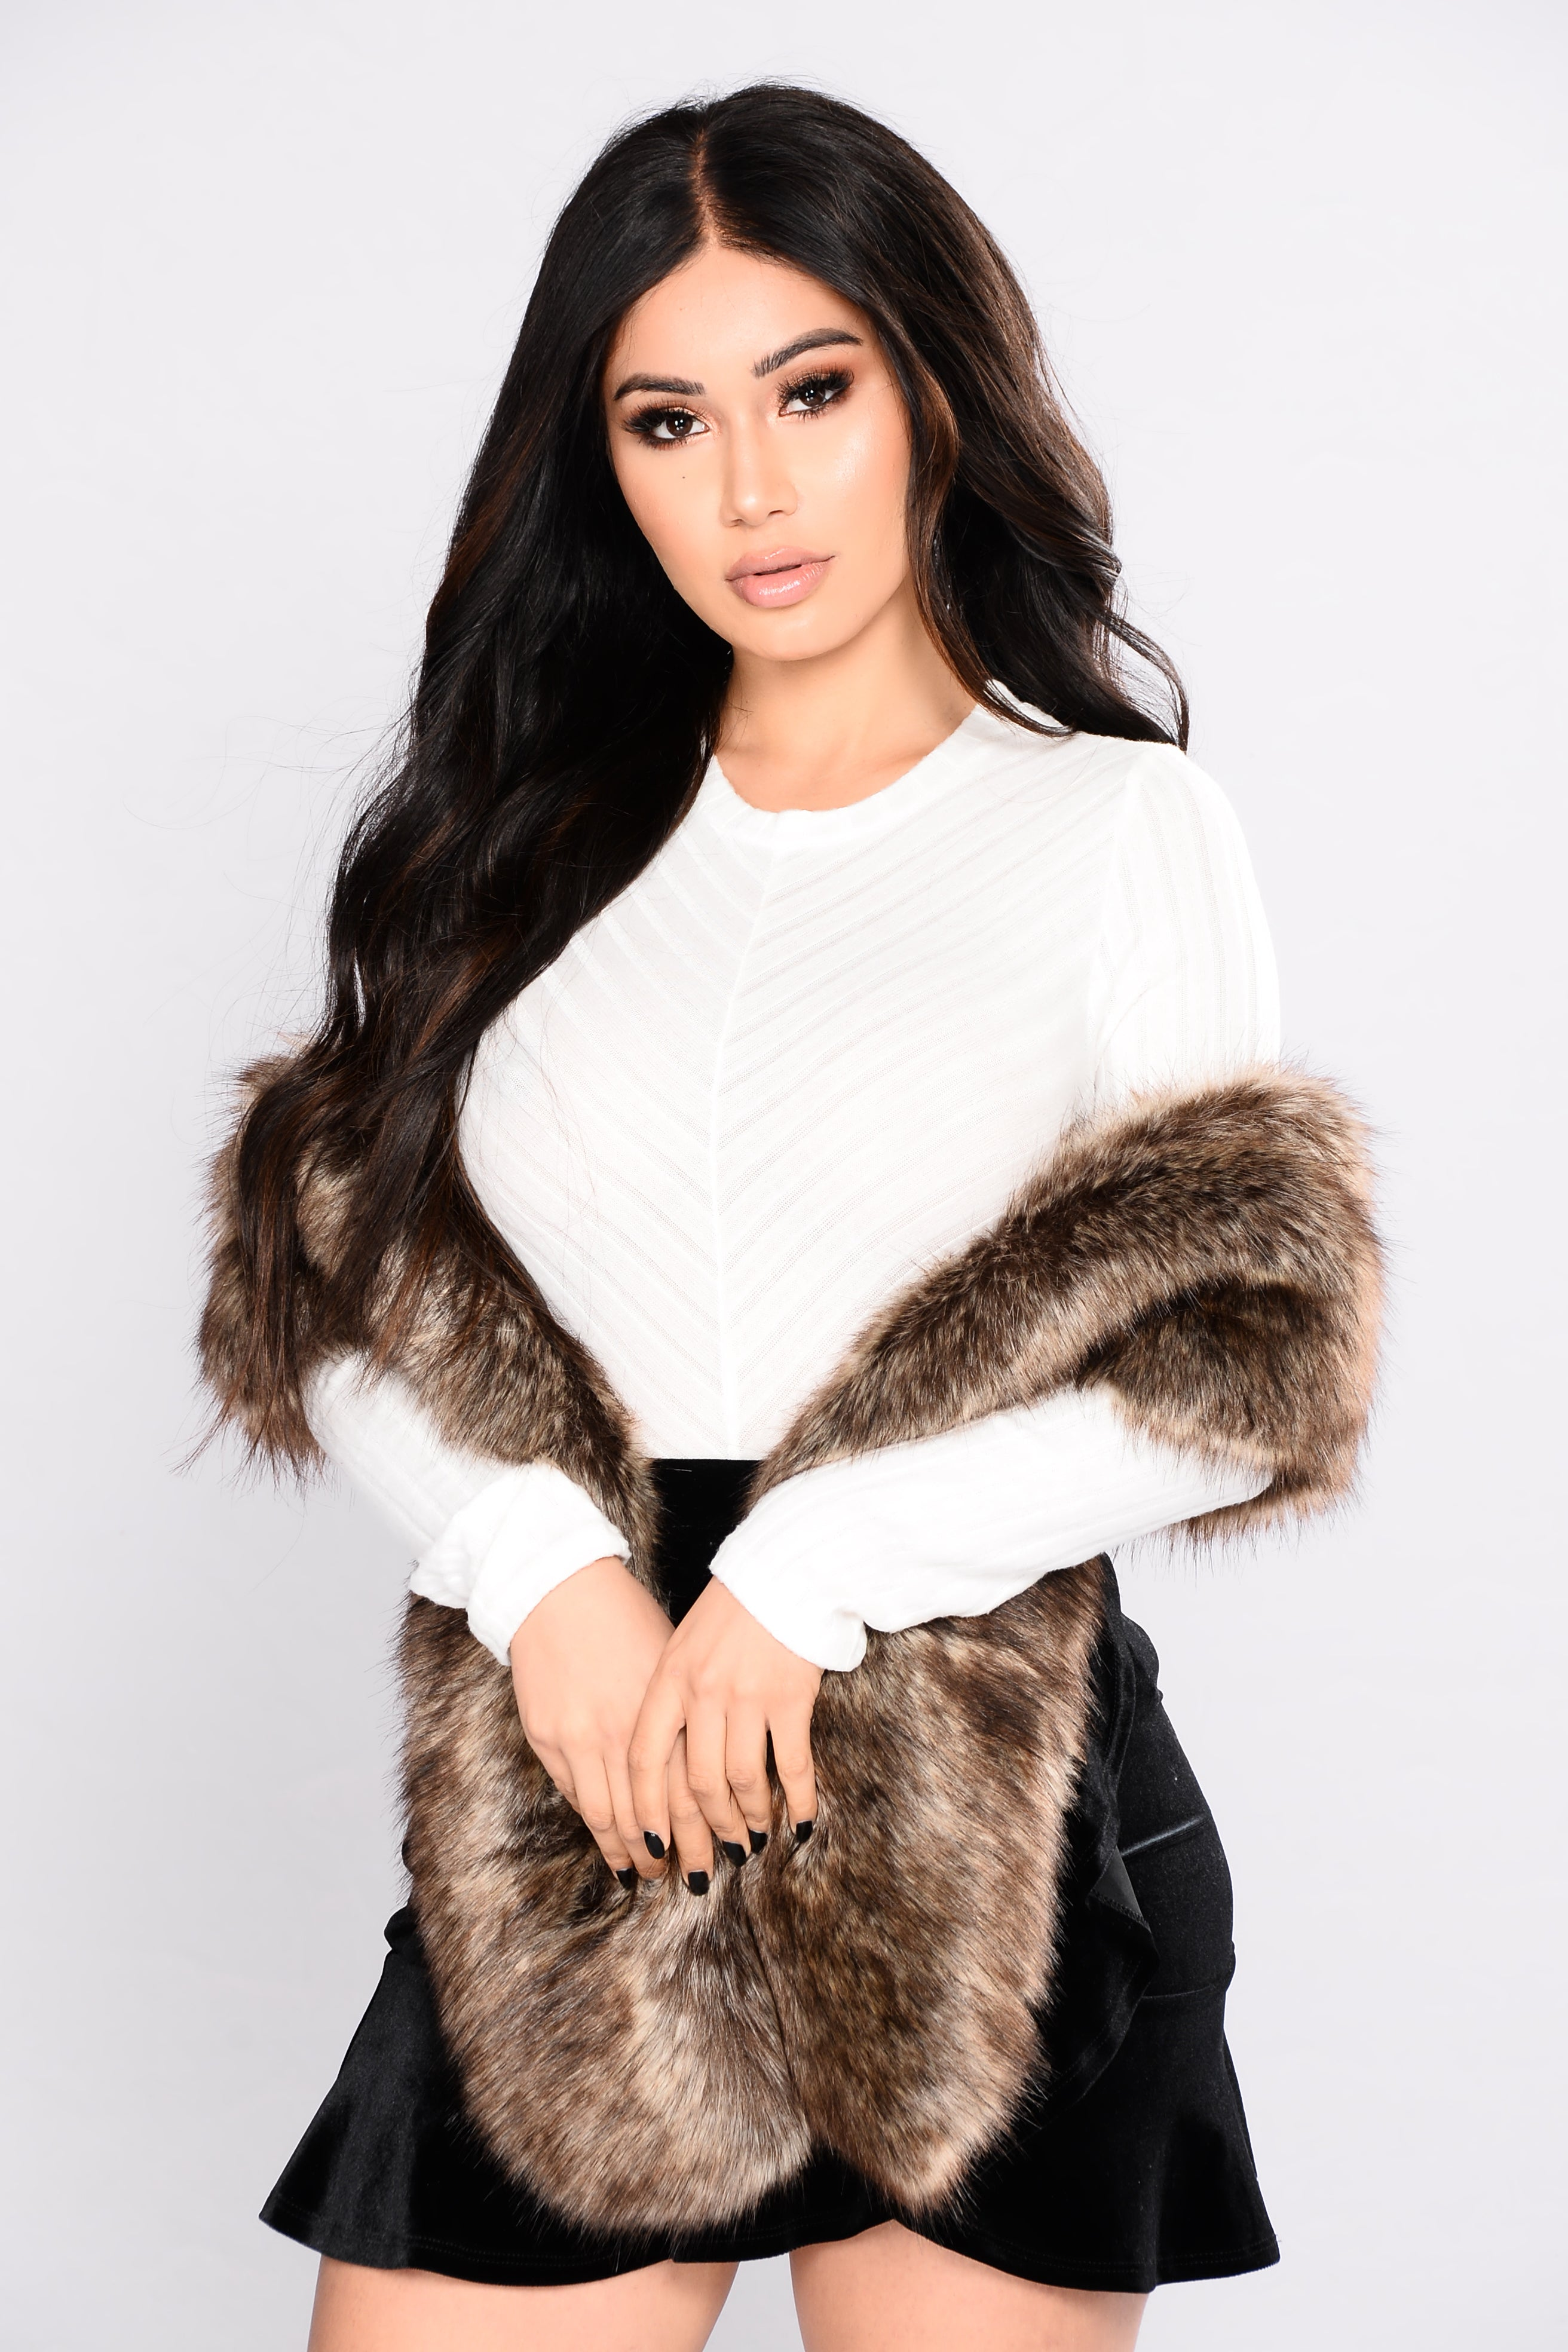 Helan Womens Fashion Style Faux Fur Ball Cape Coat Shawl Large Scarves Cloke